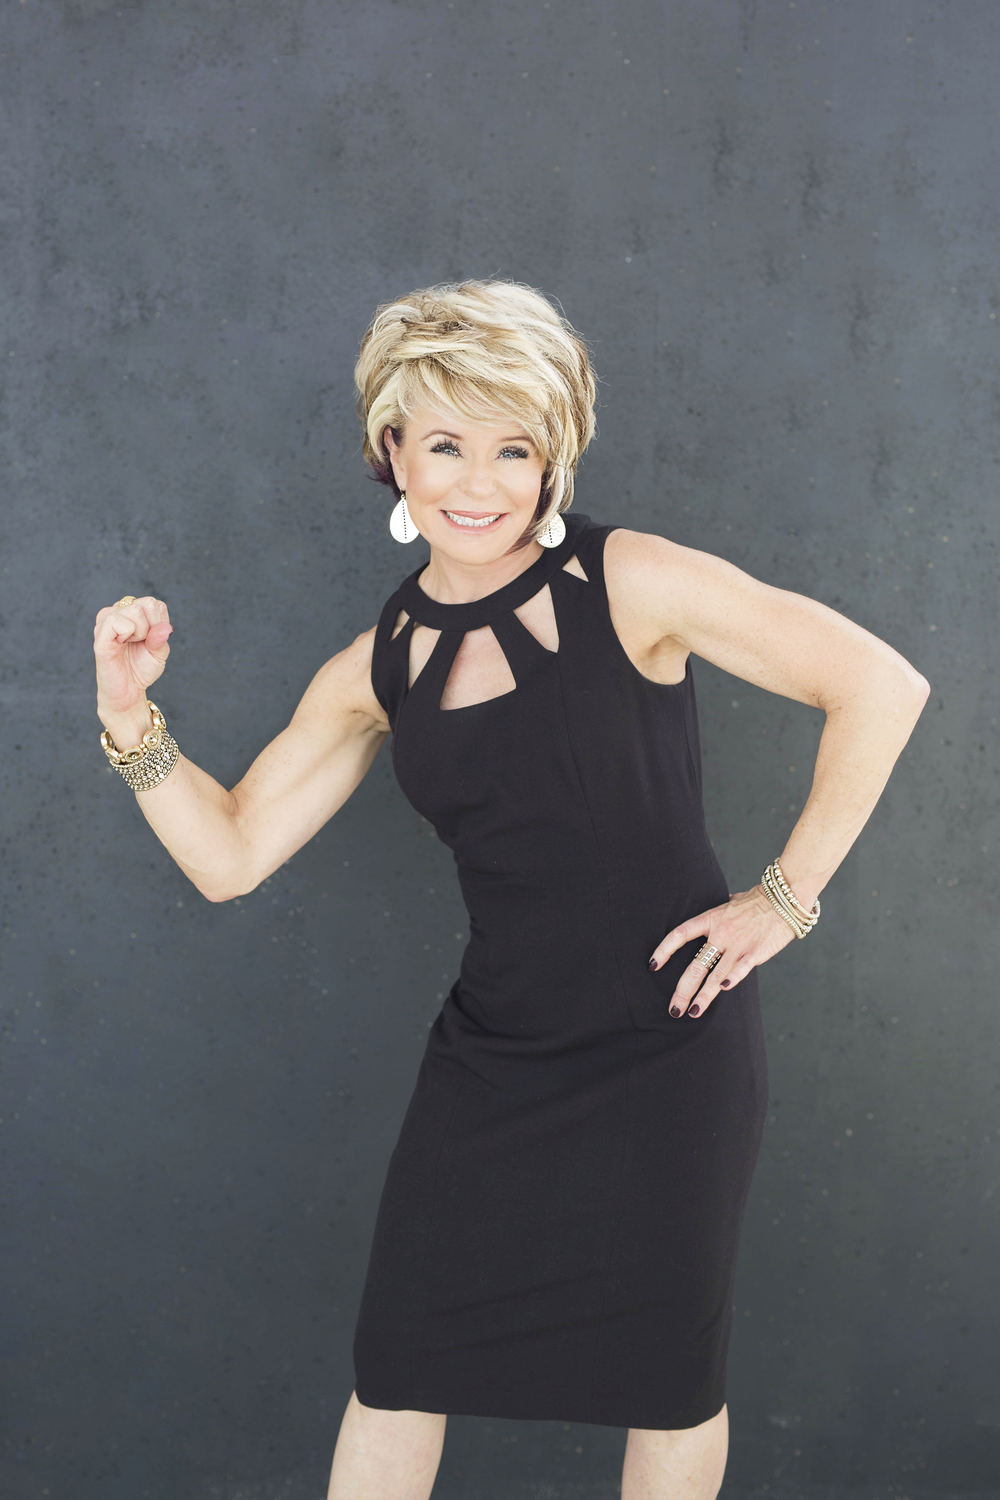 Laura Ortmann, owner of Ginger Bay Salons and Spas in Kirkwood, MO shows her strength.